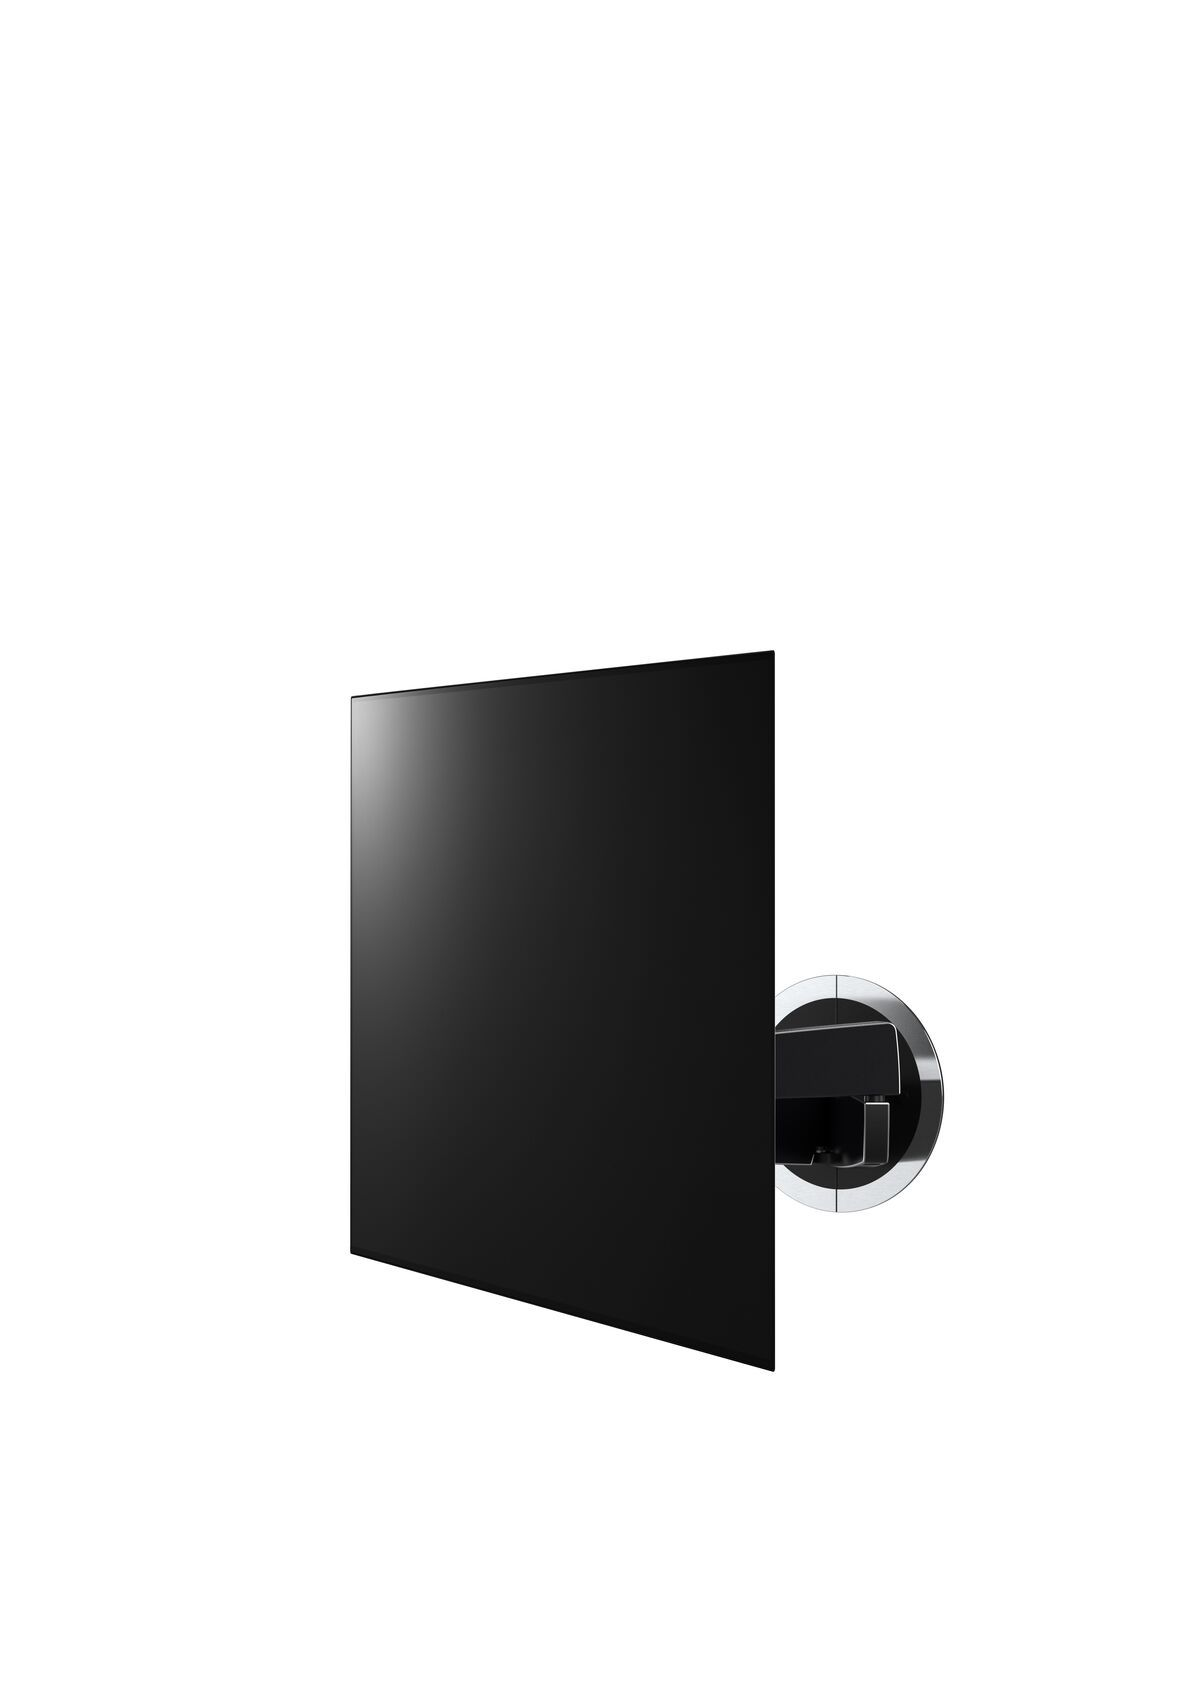 Vogel's NEXT 7346 Full-Motion OLED TV Wall Mount - Suitable for 40 up to 65 inch TVs up to 30 kg - Motion (up to 120°) - Application